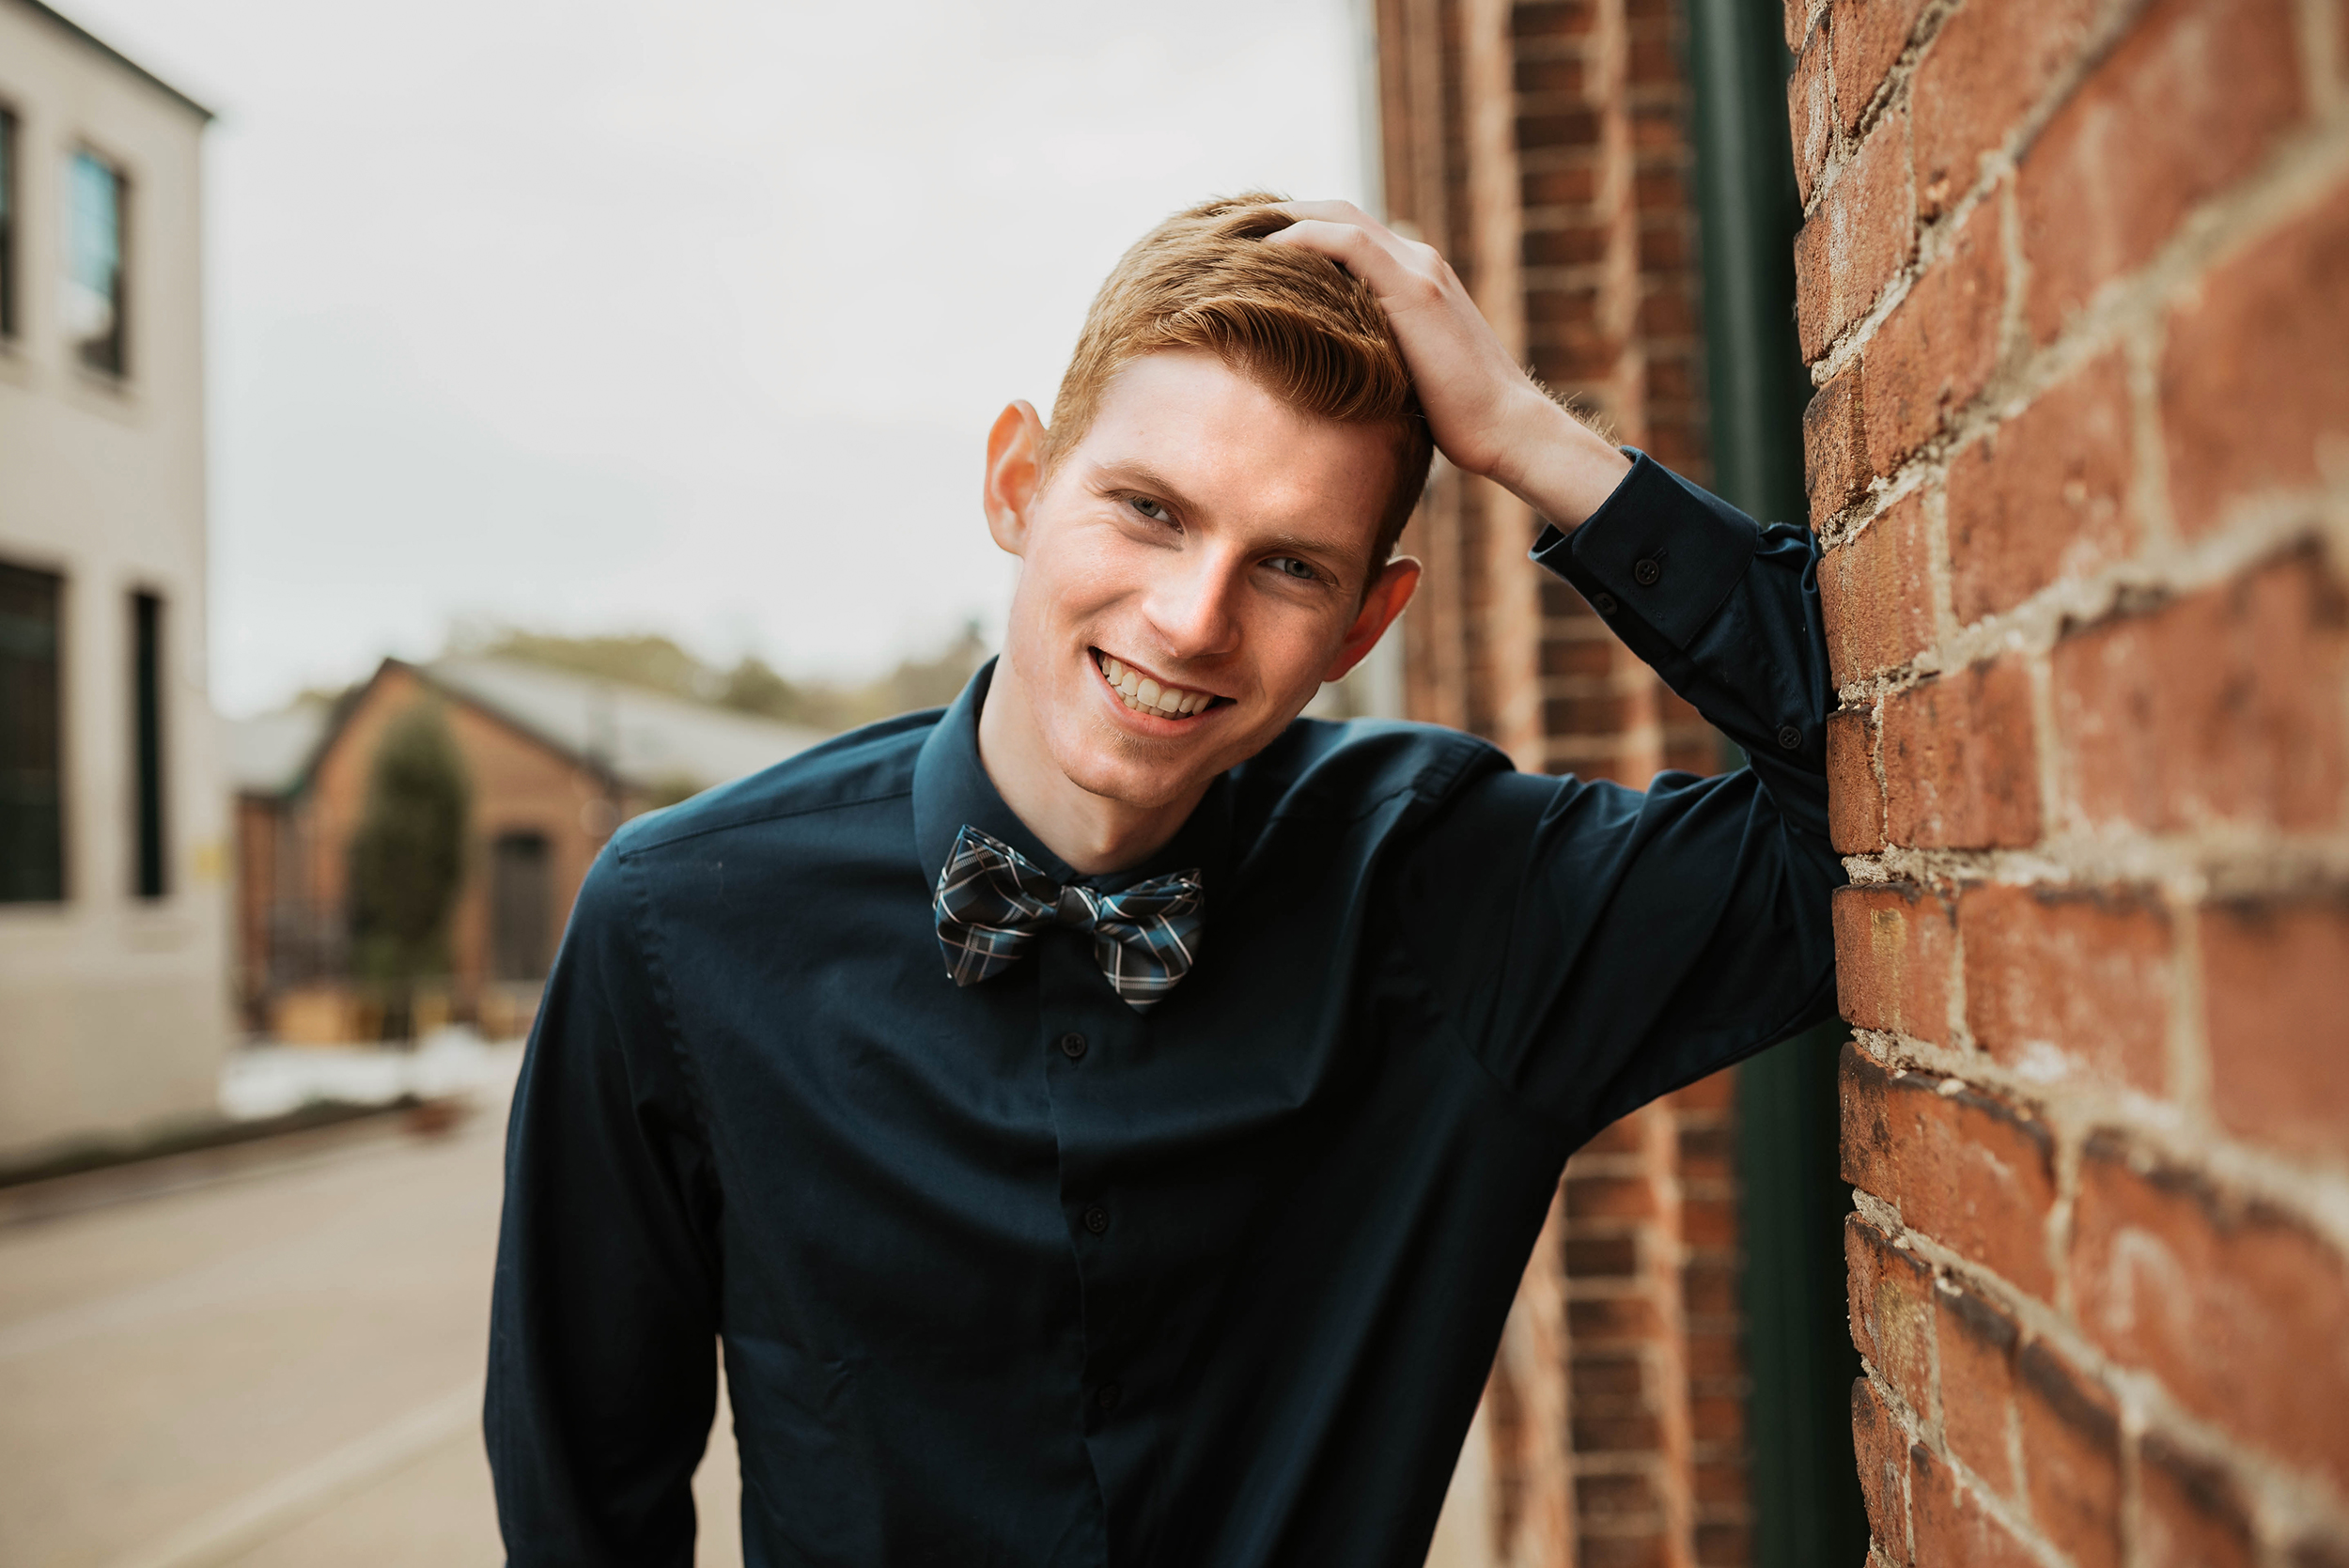 Lehigh Valley Senior photographer +| Lehigh valley senior pictures | lehigh valley photogapher | senior boy pictures | stephanie vasiliadis photography